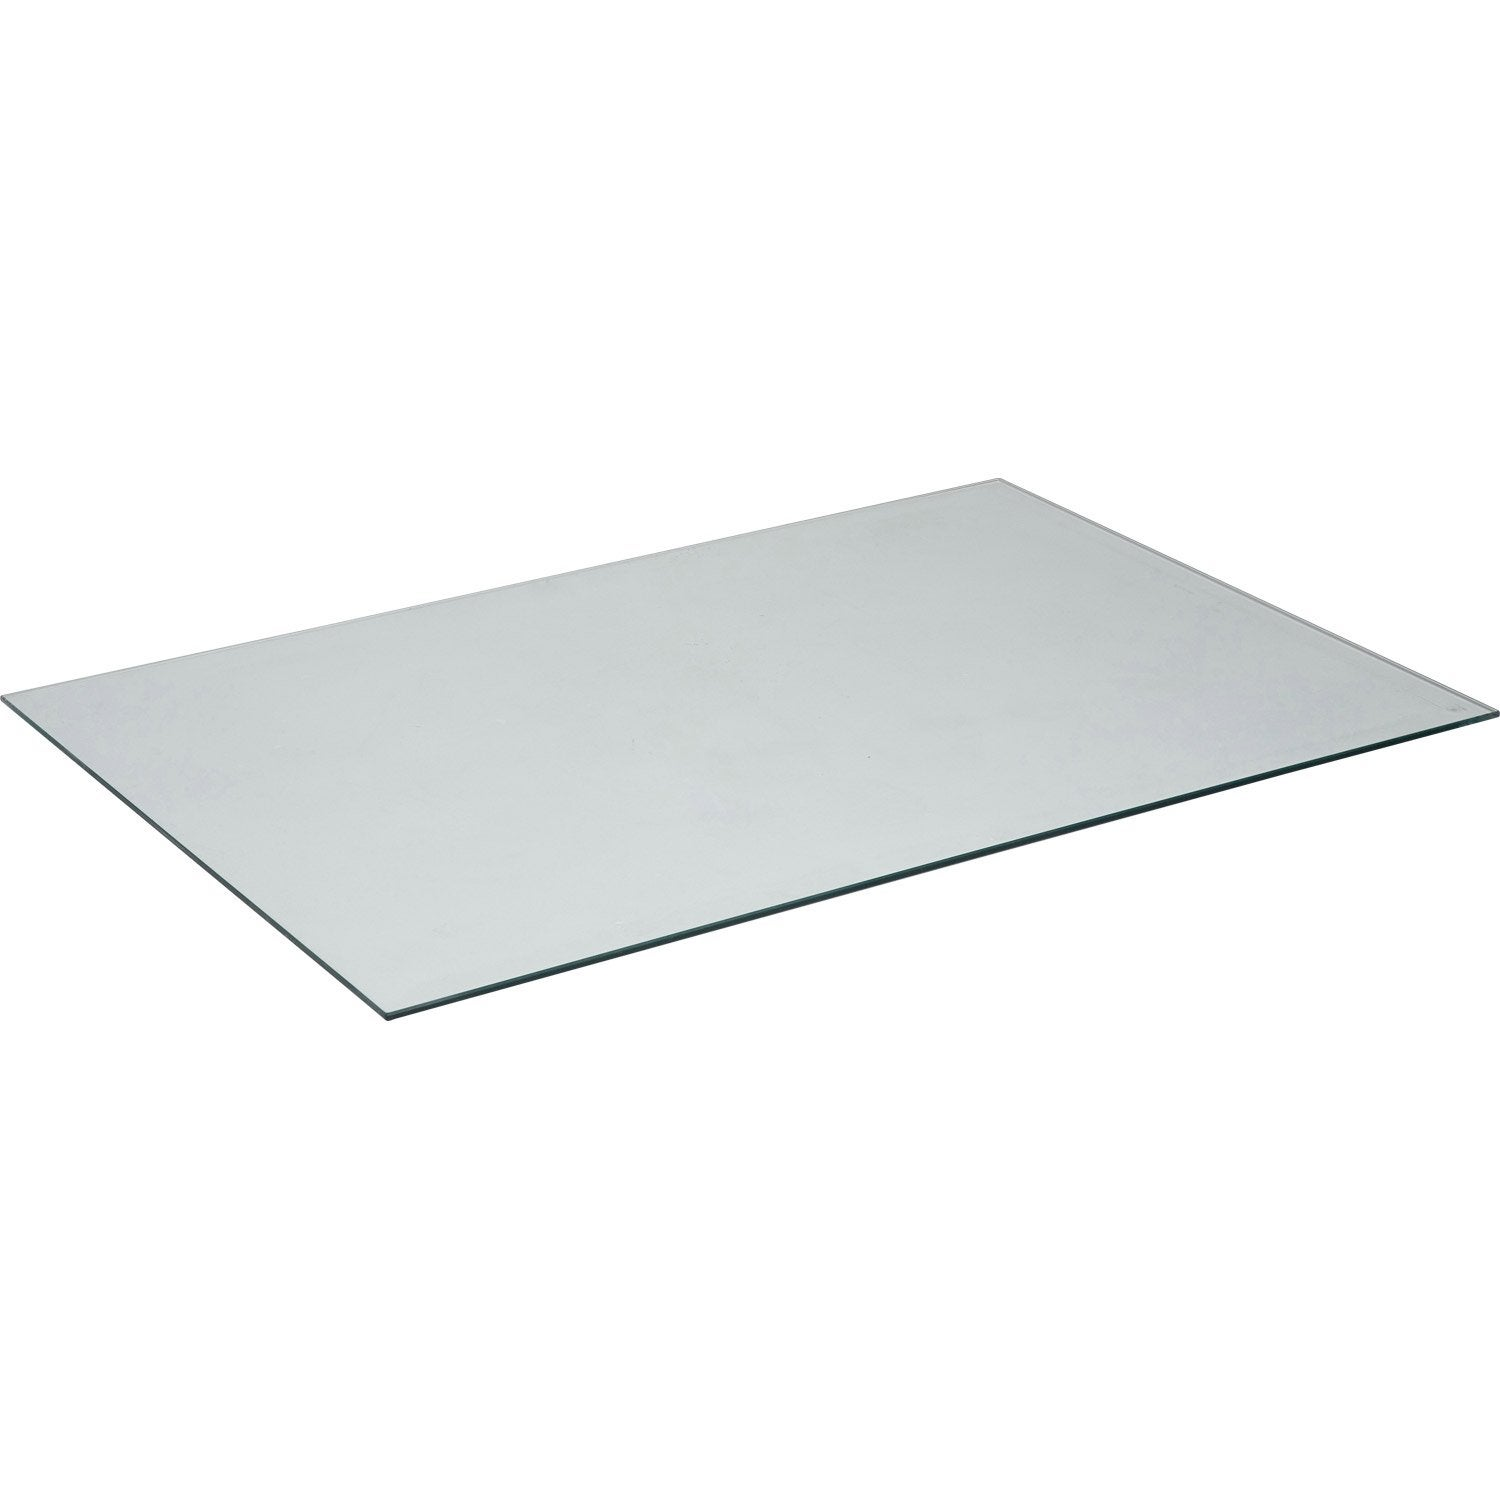 Plateau de table verre 140 x 72 cm 8 mm leroy merlin - Verre trempe leroy merlin ...